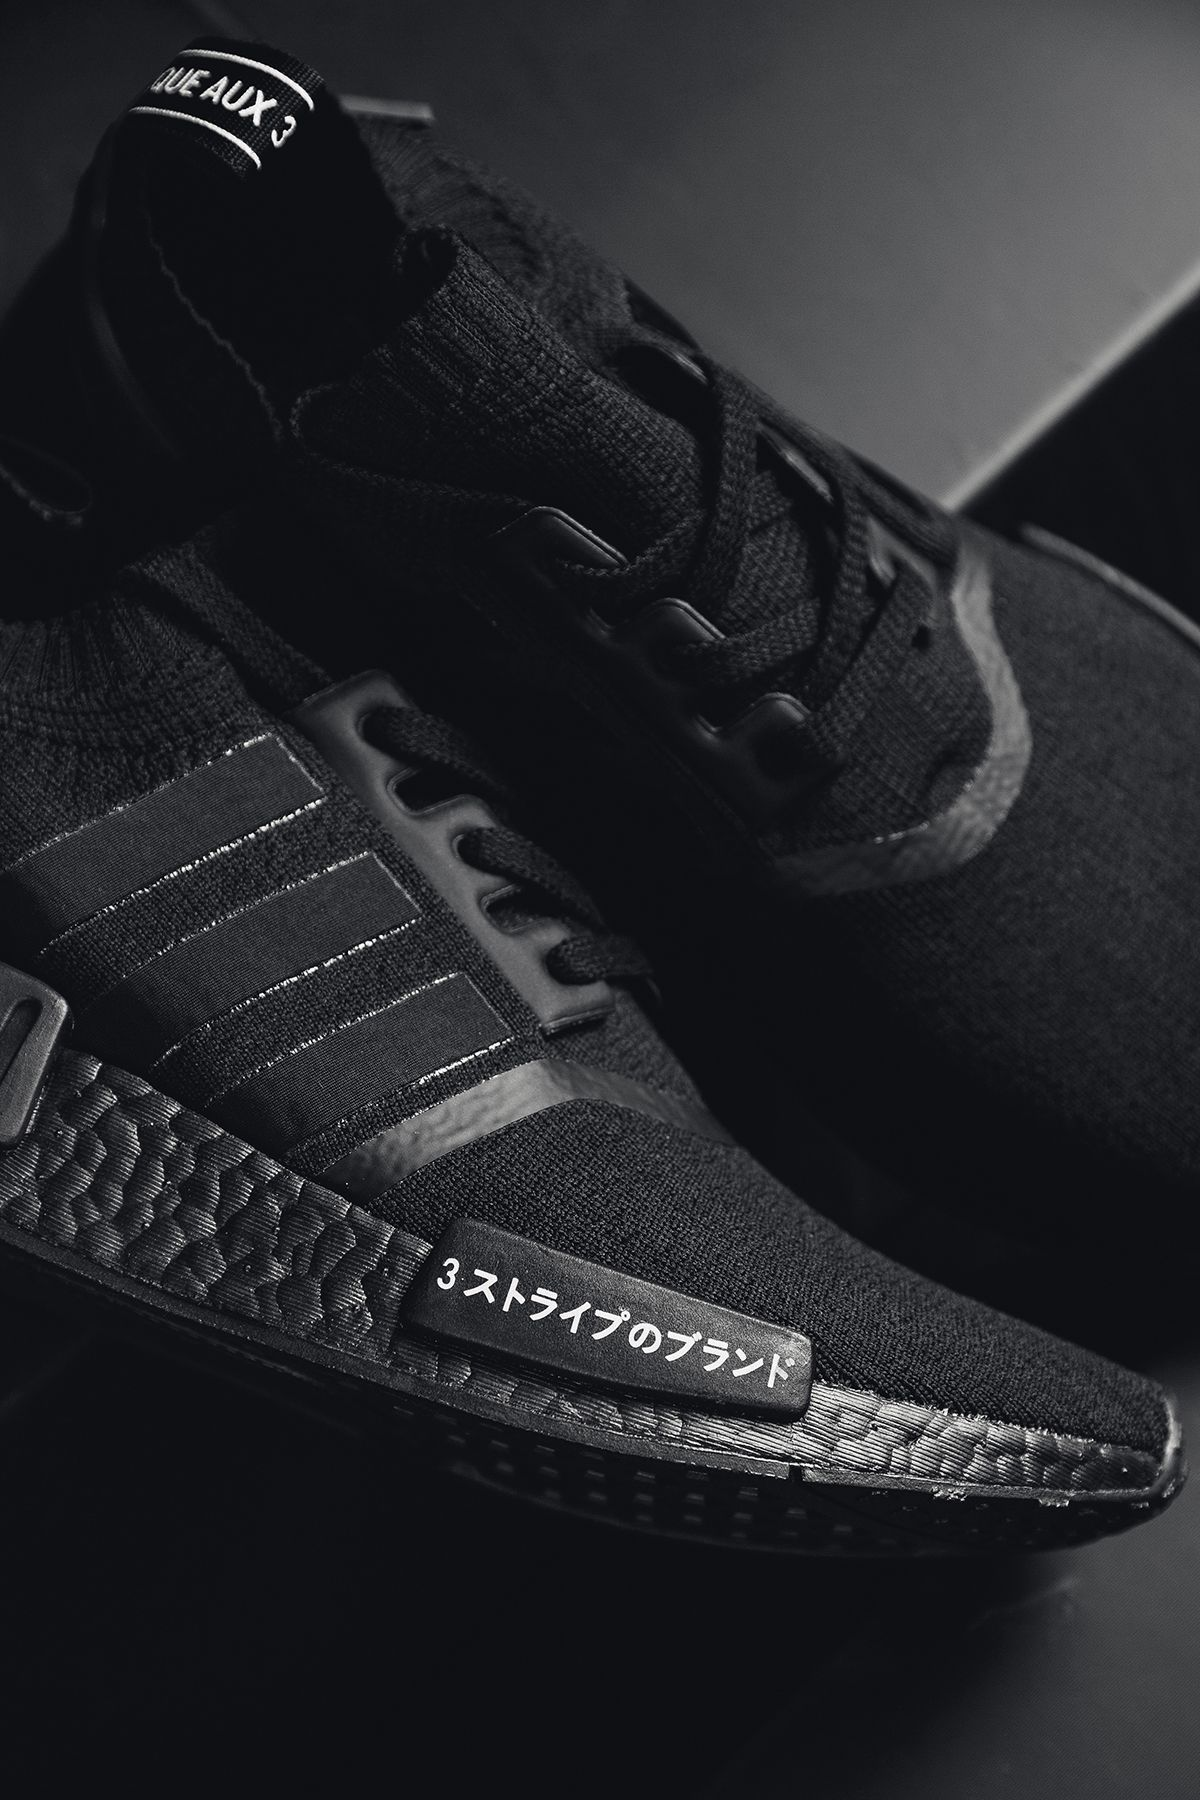 fa98011ab5403 Adidas Originals NMD_R1 Primeknit Triple Black